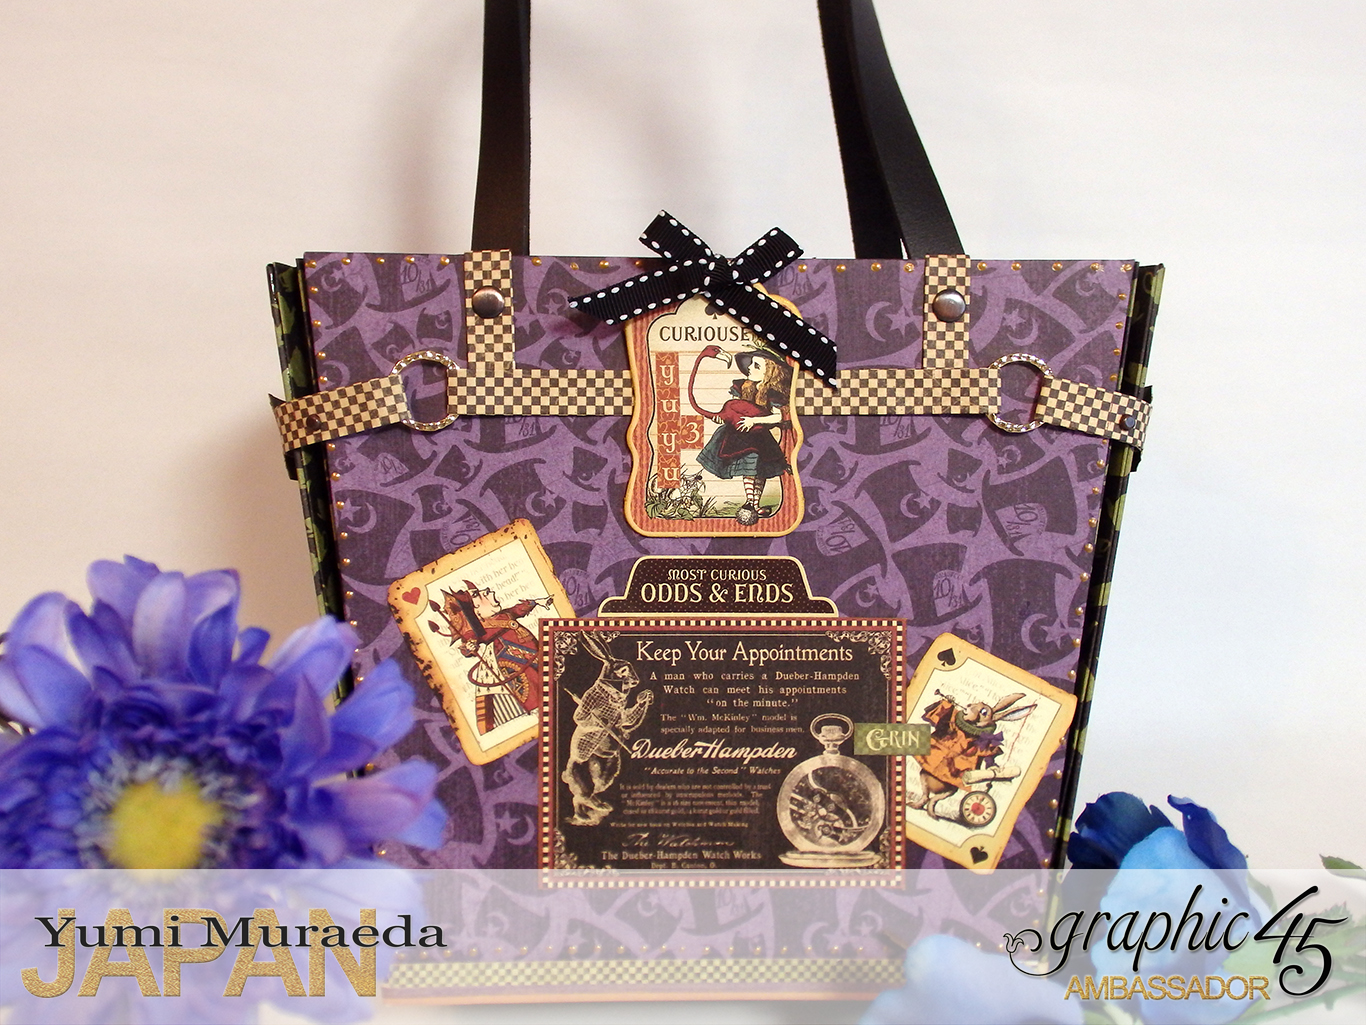 TownToteBagGraphic45HalloweenWonderlandbyYumiMuraeadaProductbyGraphic45Photo3.jpg